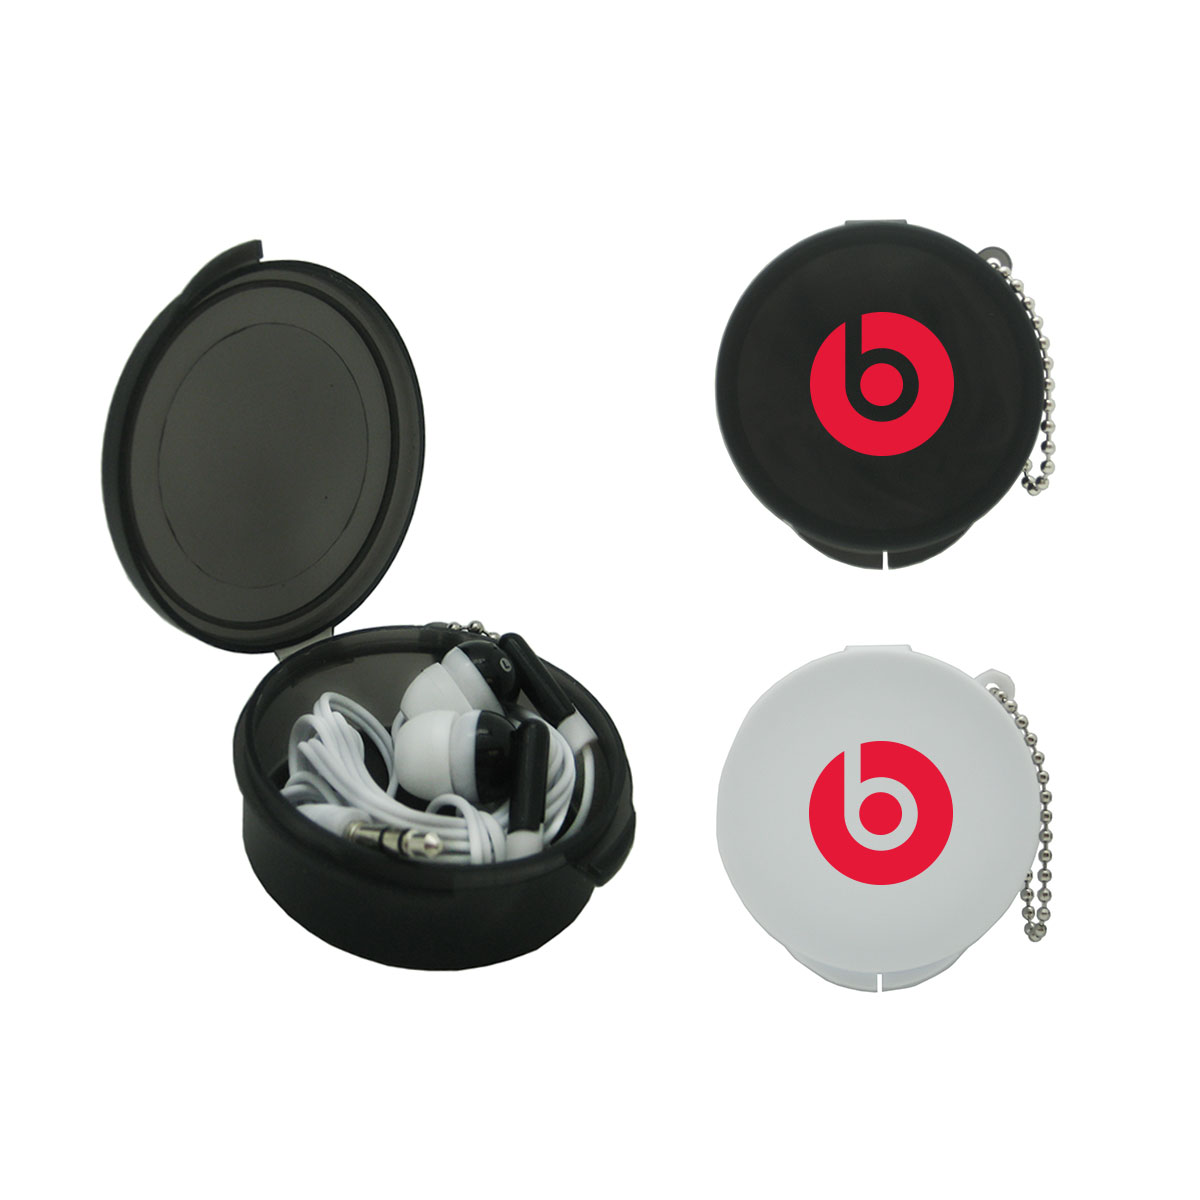 ROUND POCKET CASE WITH EARBUDS